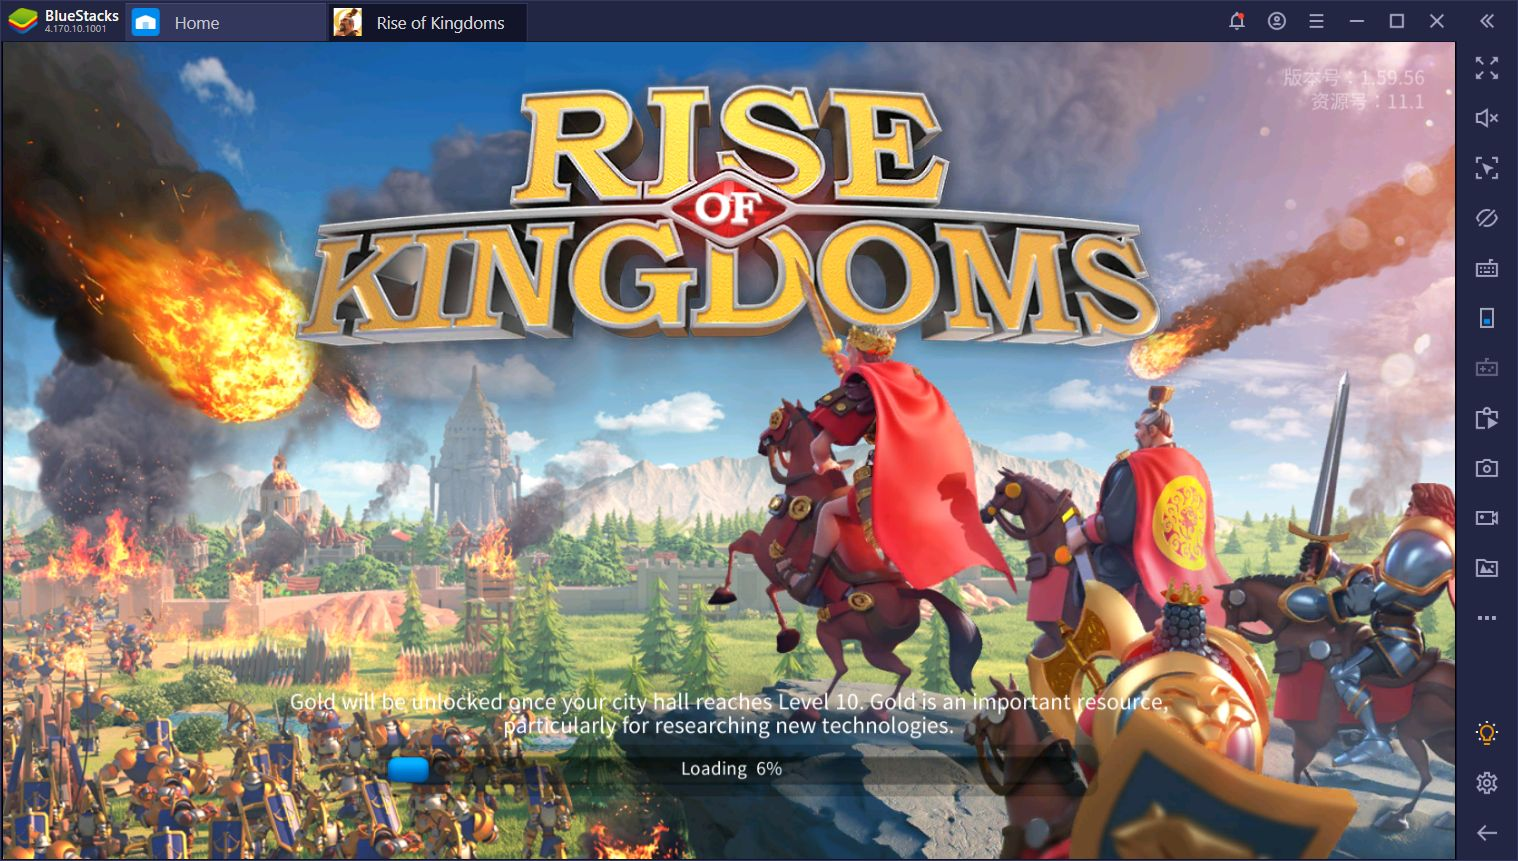 Rise of Kingdoms Spring Update - Everything You Need to Know About Patch 1.0.31